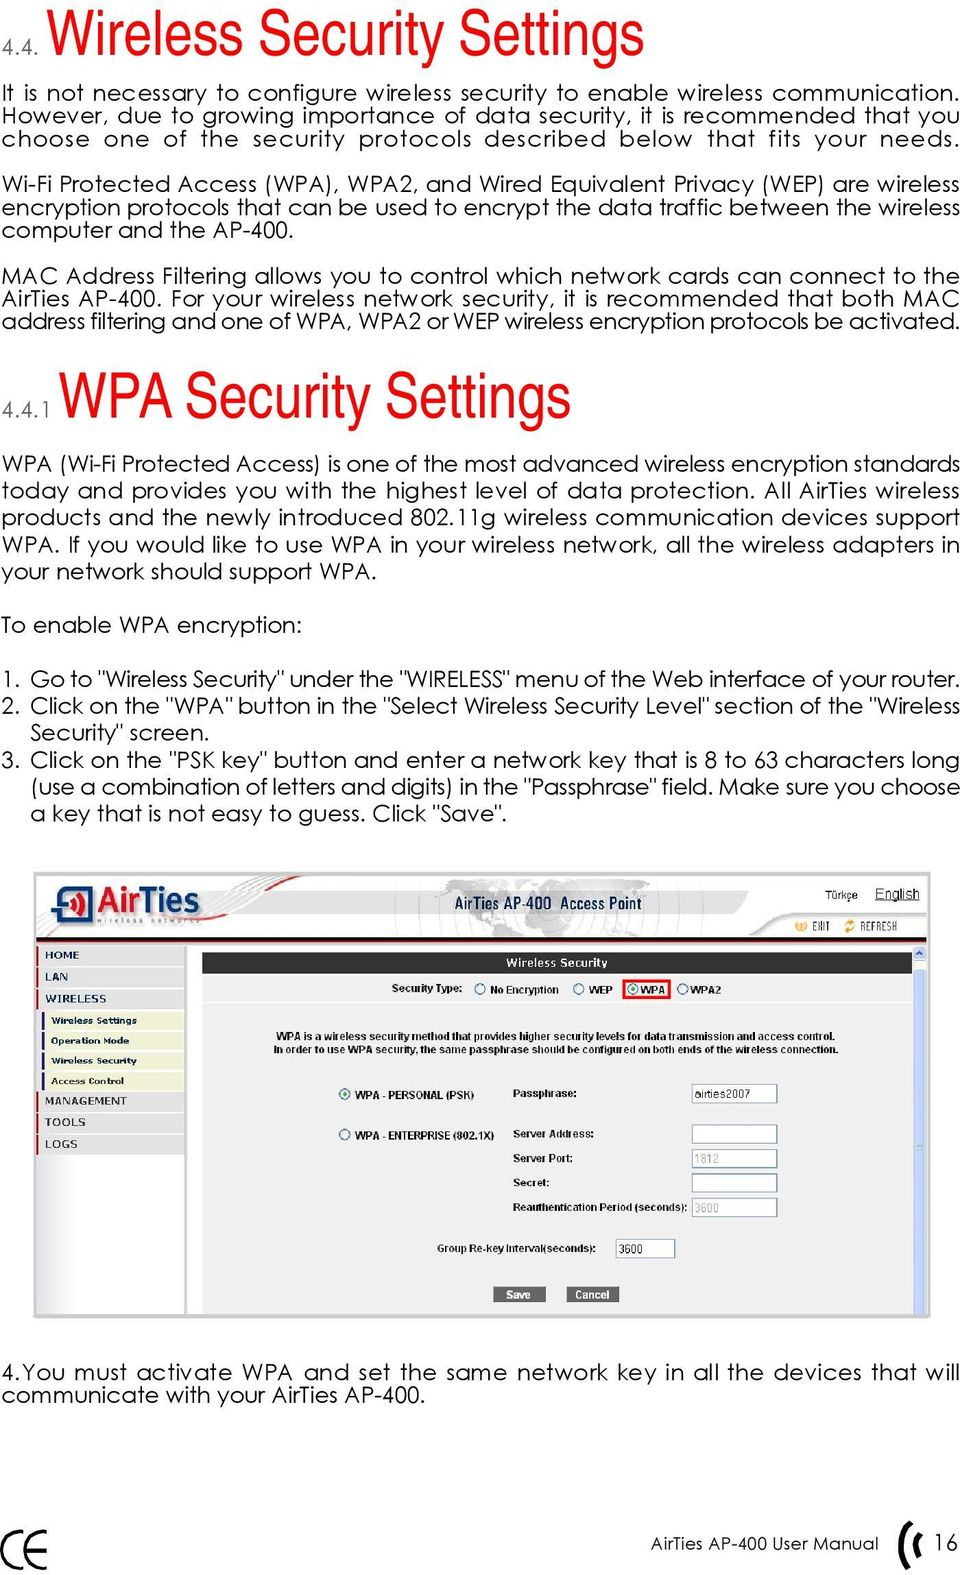 Wi-Fi Protected Access (WPA), WPA2, and Wired Equivalent Privacy (WEP) are wireless encryption protocols that can be used to encrypt the data traffic between the wireless computer and the AP-400.